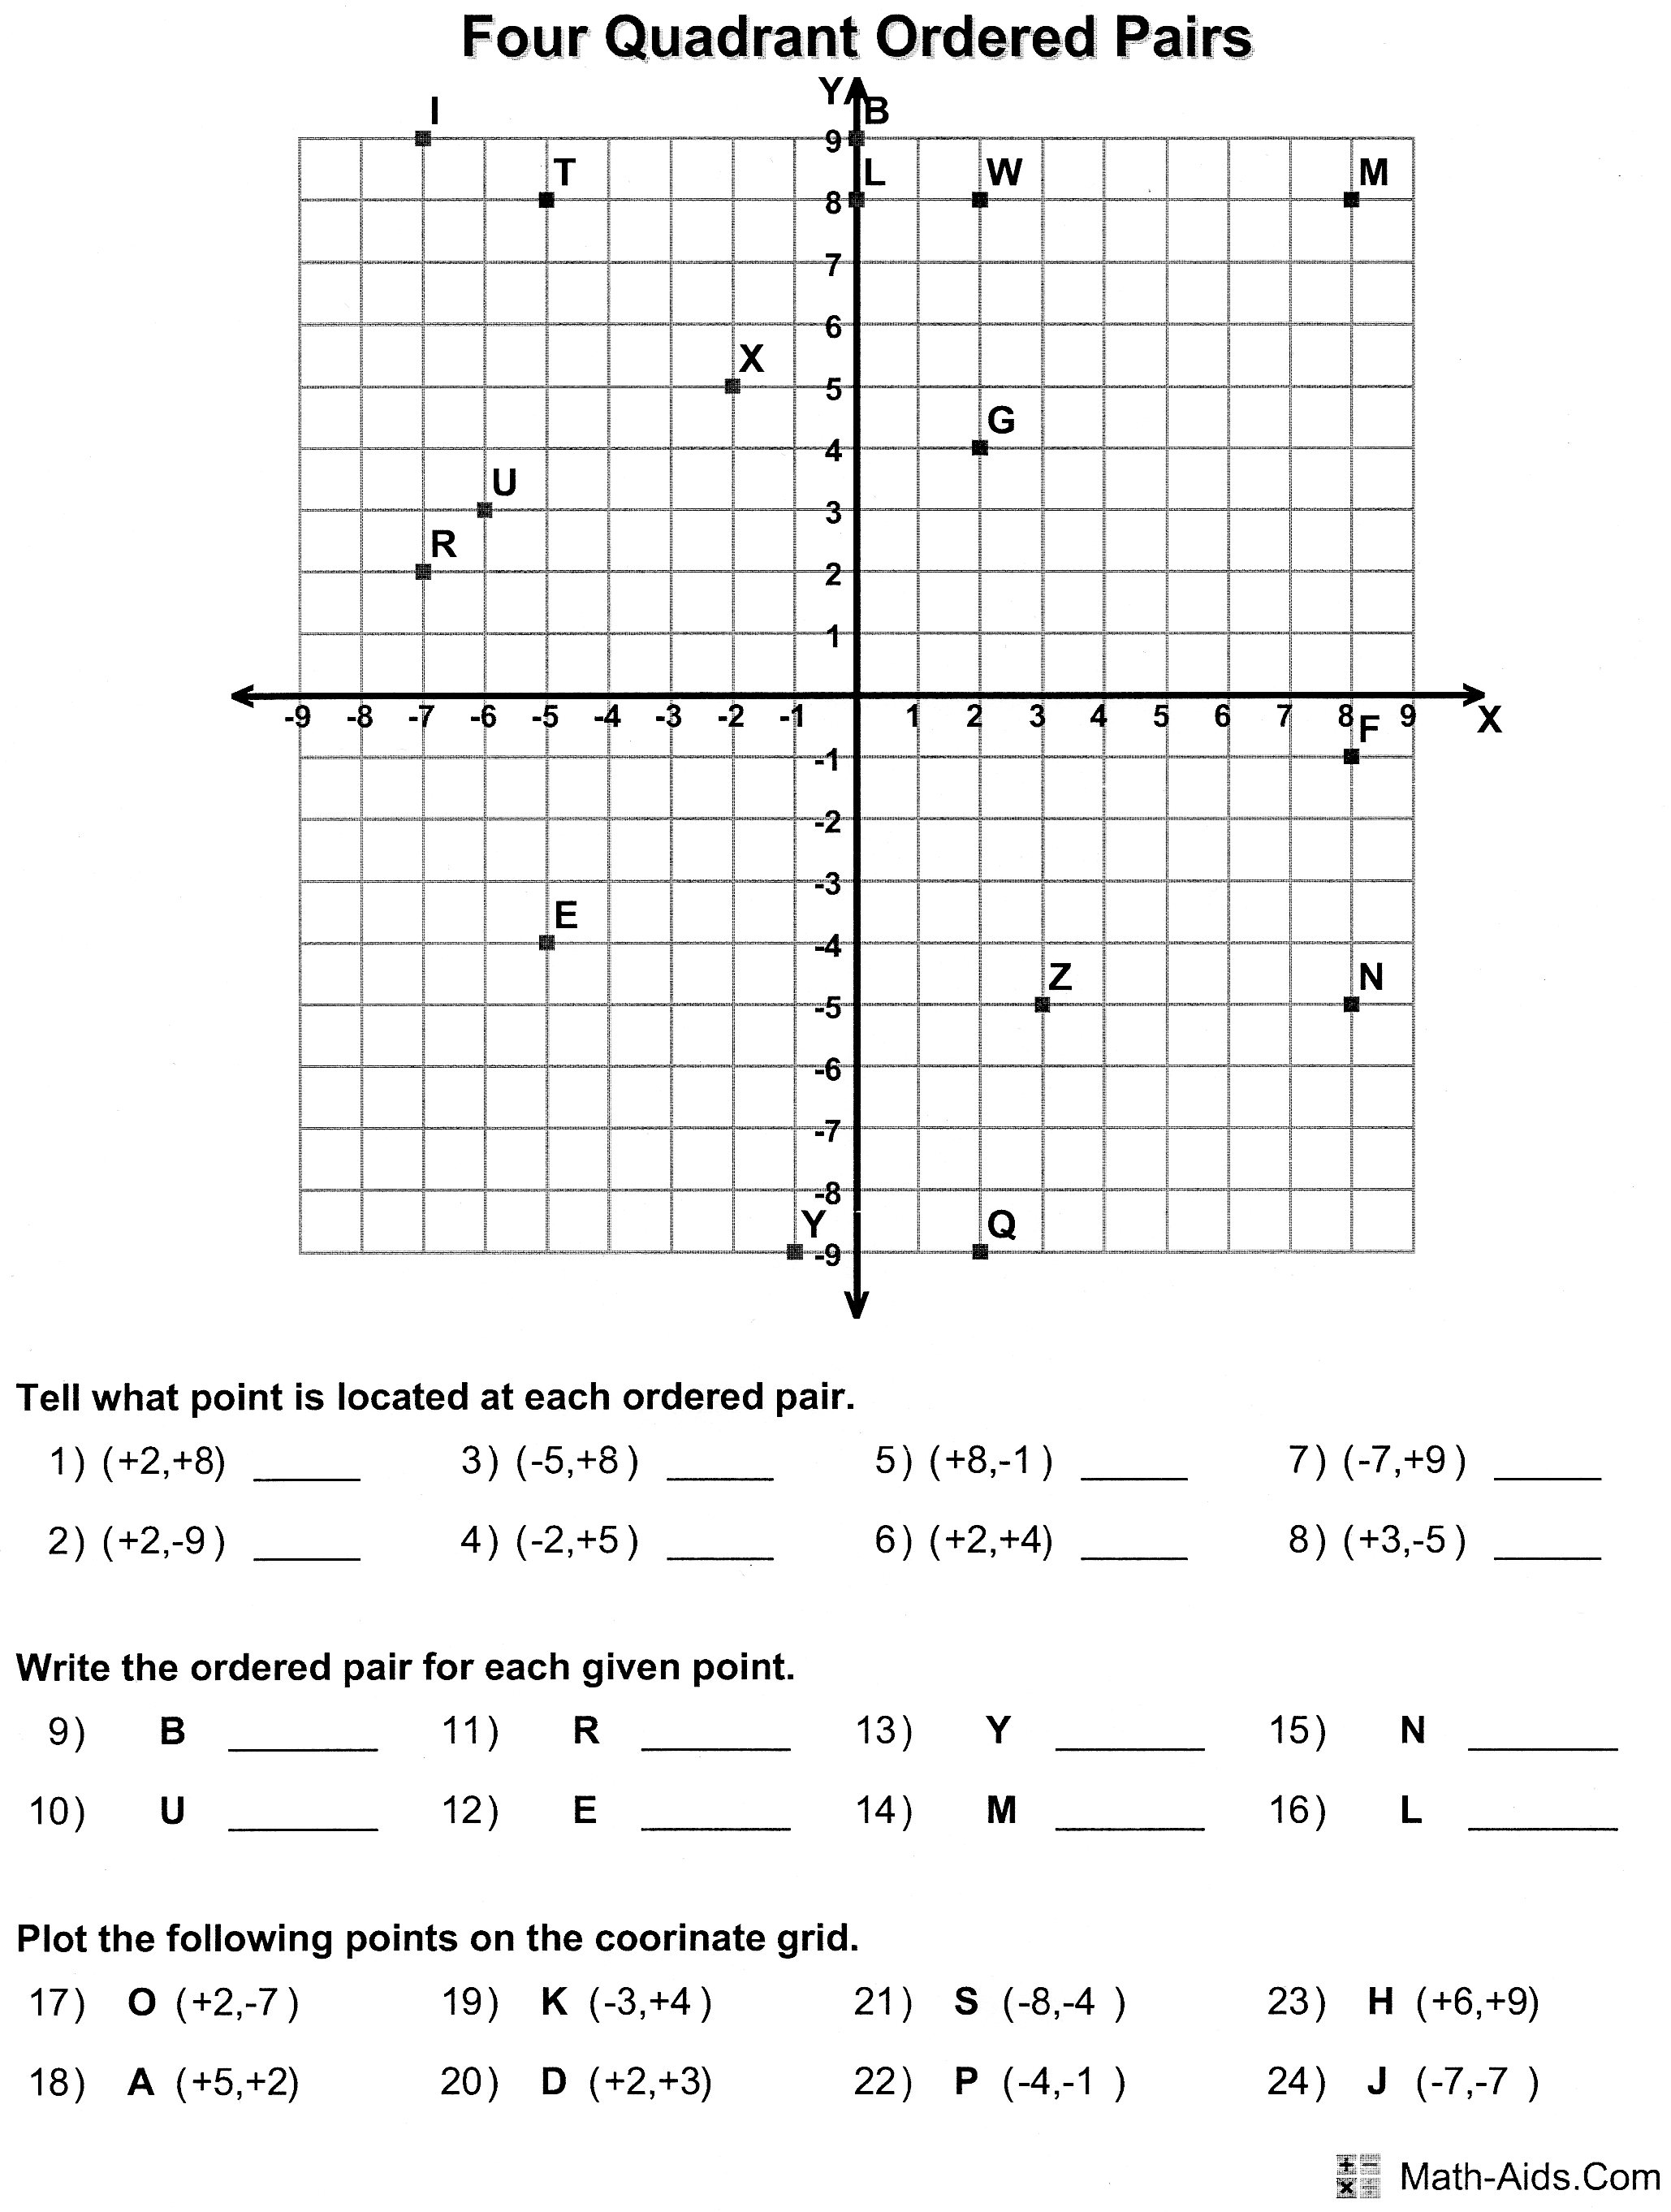 Undone Graphing Coordinate Plane Worksheet